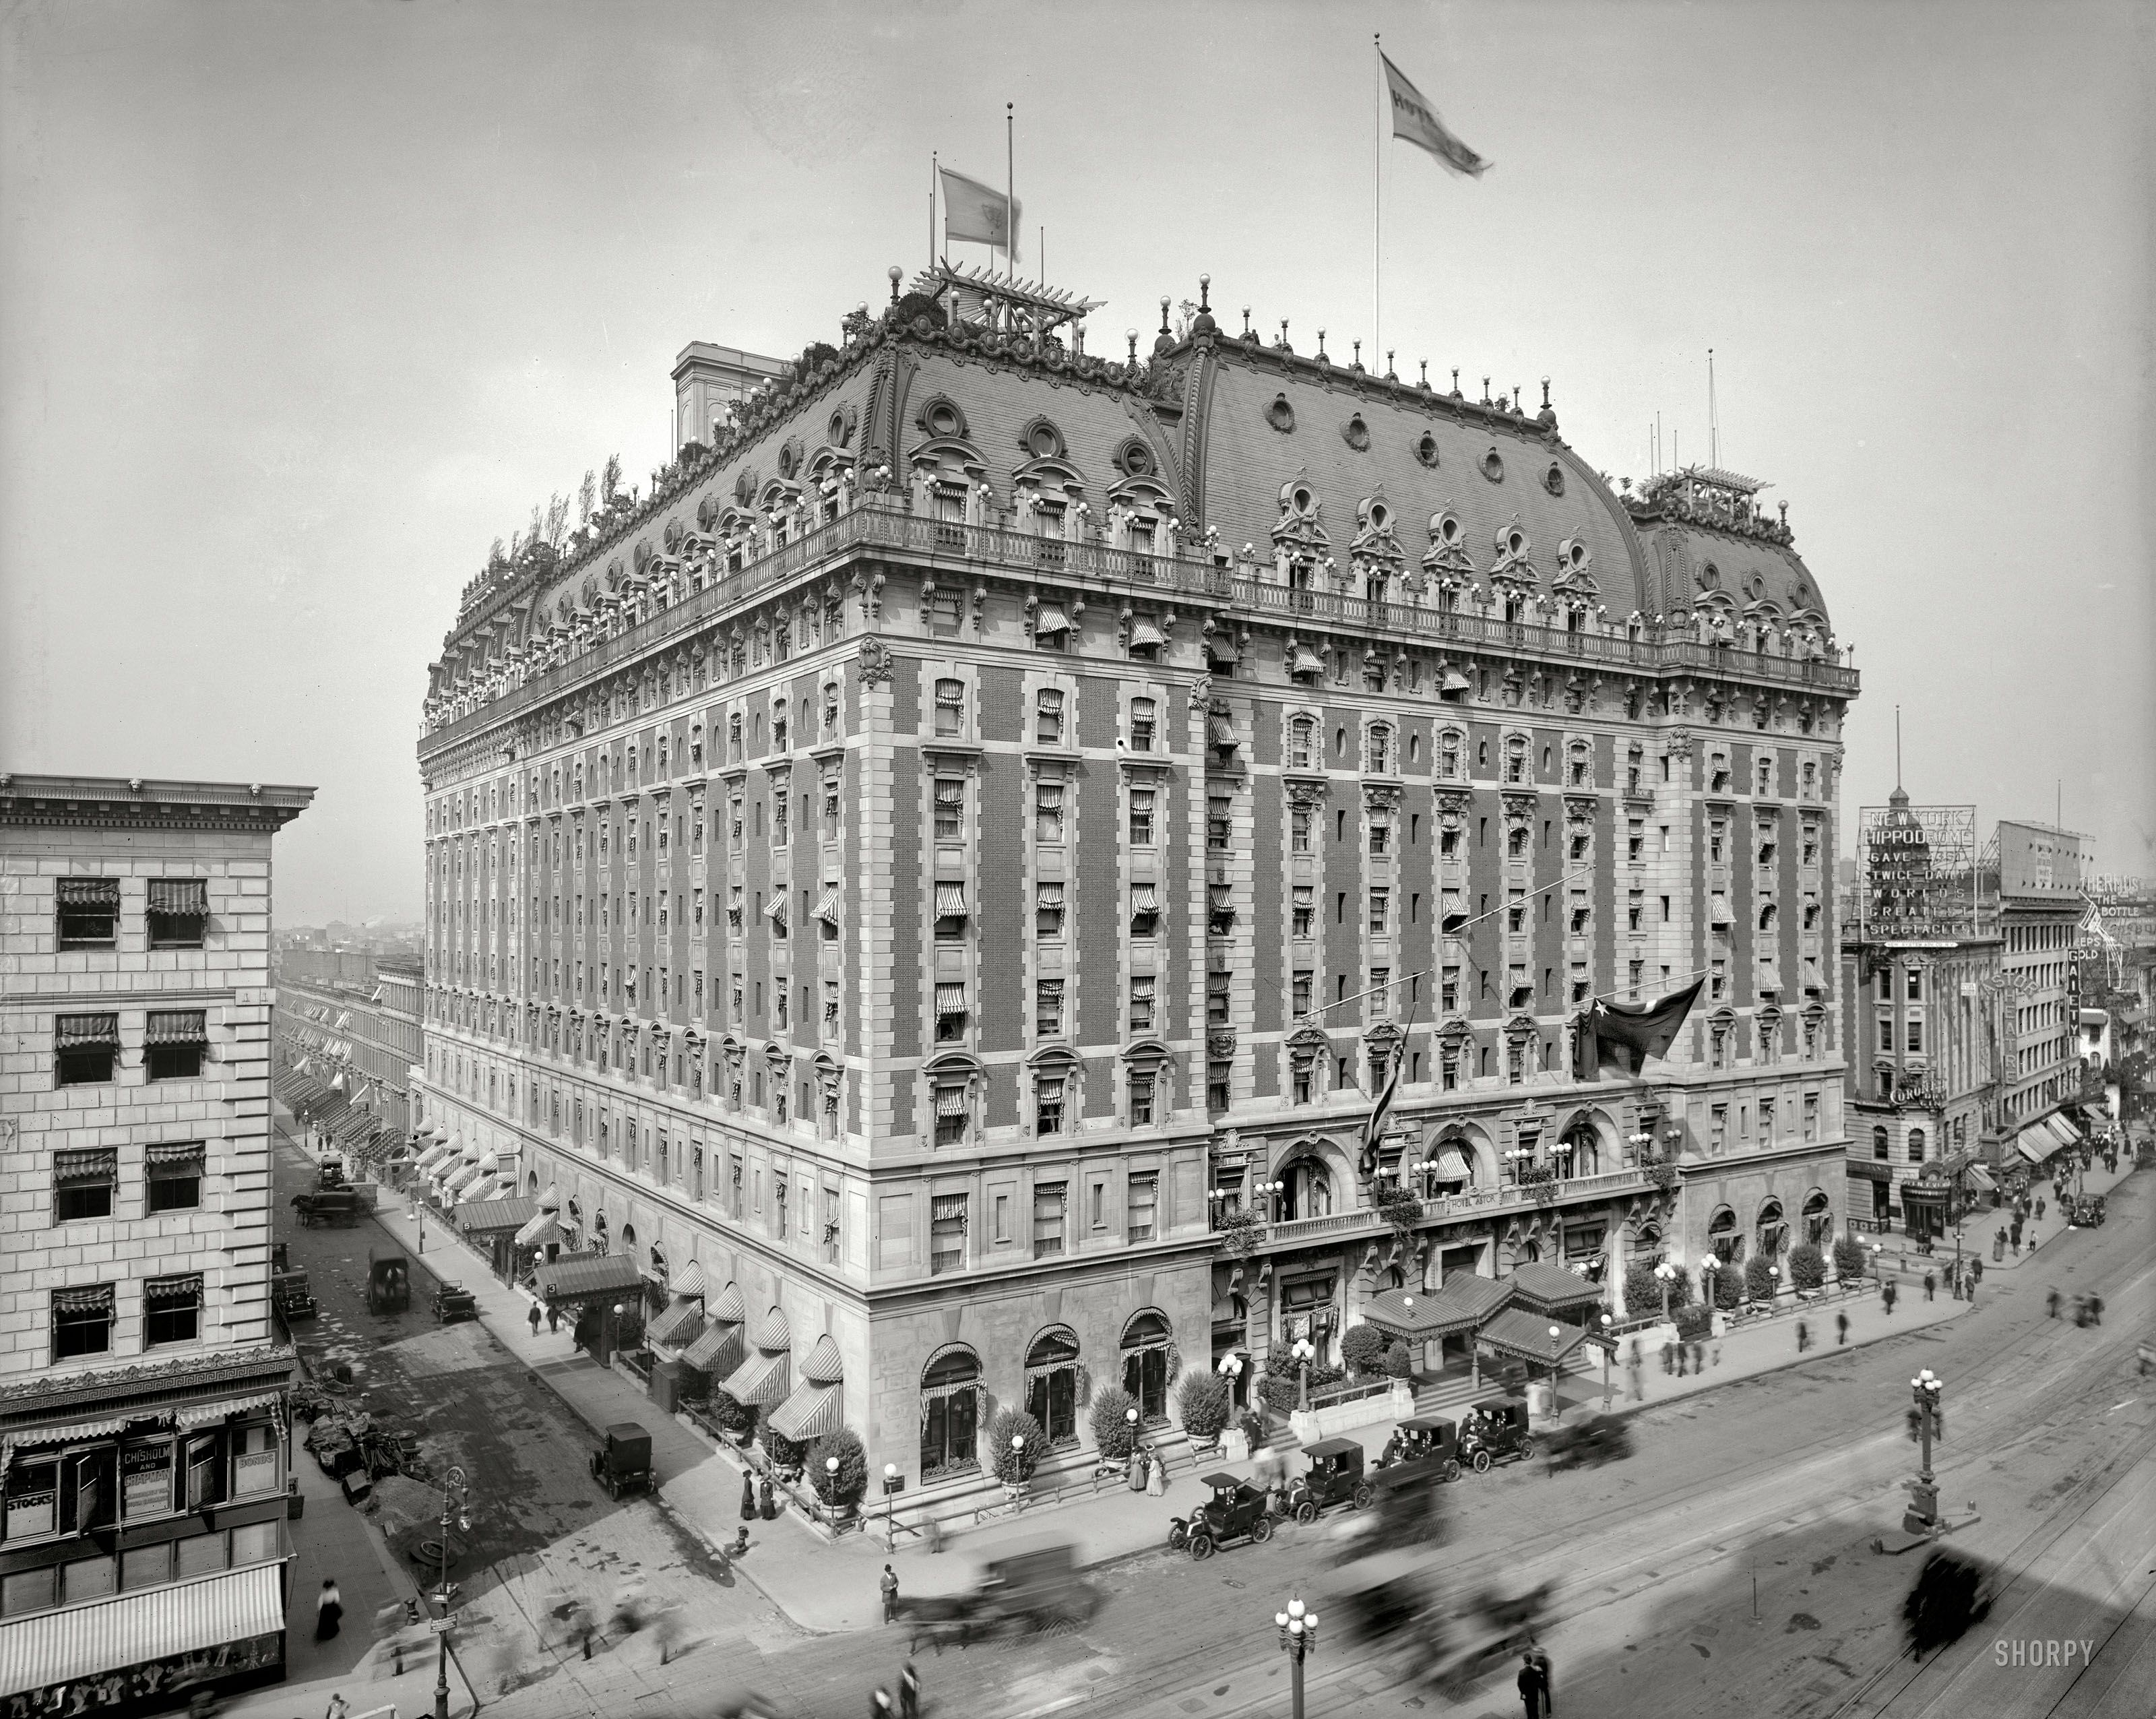 Hotel Astor, NYC (1904-1967) Broadway and 44th Street, 1909